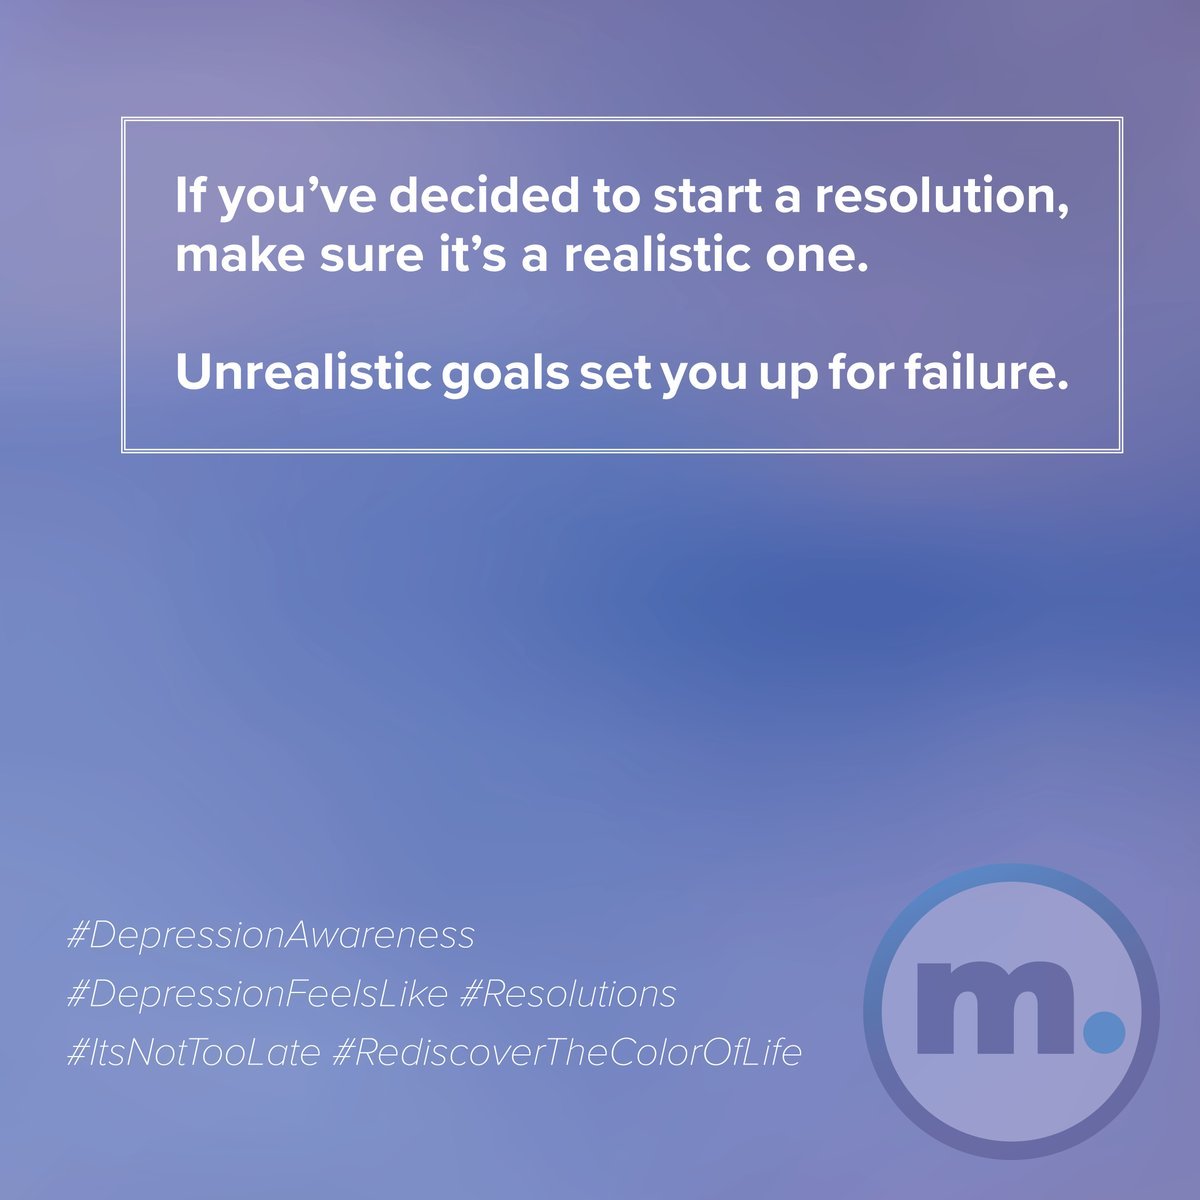 If you've decided to start a resolution, make sure it's a realistic one.   Unrealistic goals set you up for failure.  #DepressionAwareness #DepressionFeelsLike #Resolutions #ItsNotTooLate #RediscoverTheColorOfLife